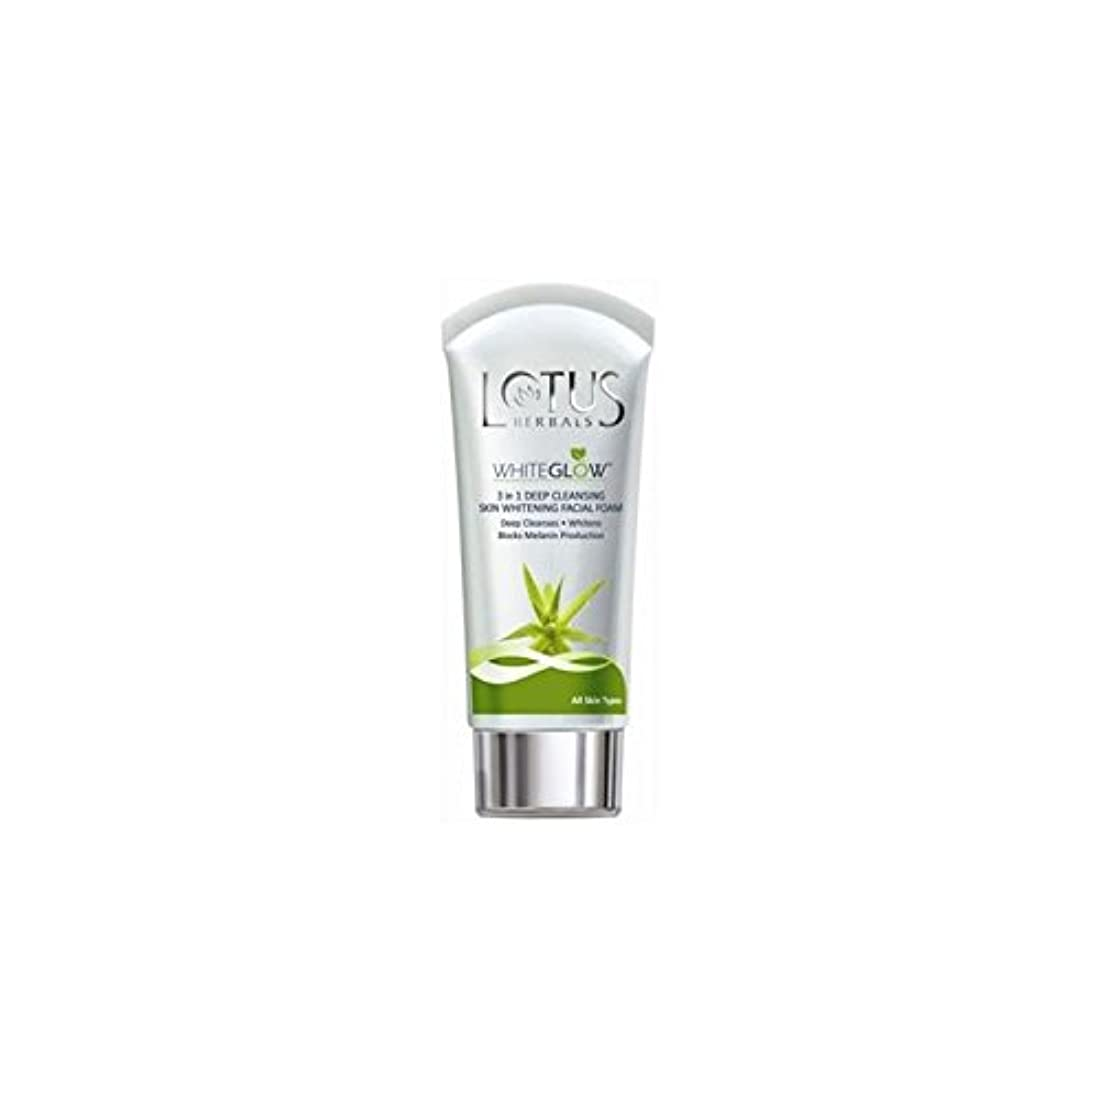 全員チョーク物足りないLotus Herbals 3-in-1 Deep Cleansing Skin Whitening Facial Foam - Whiteglow 50g